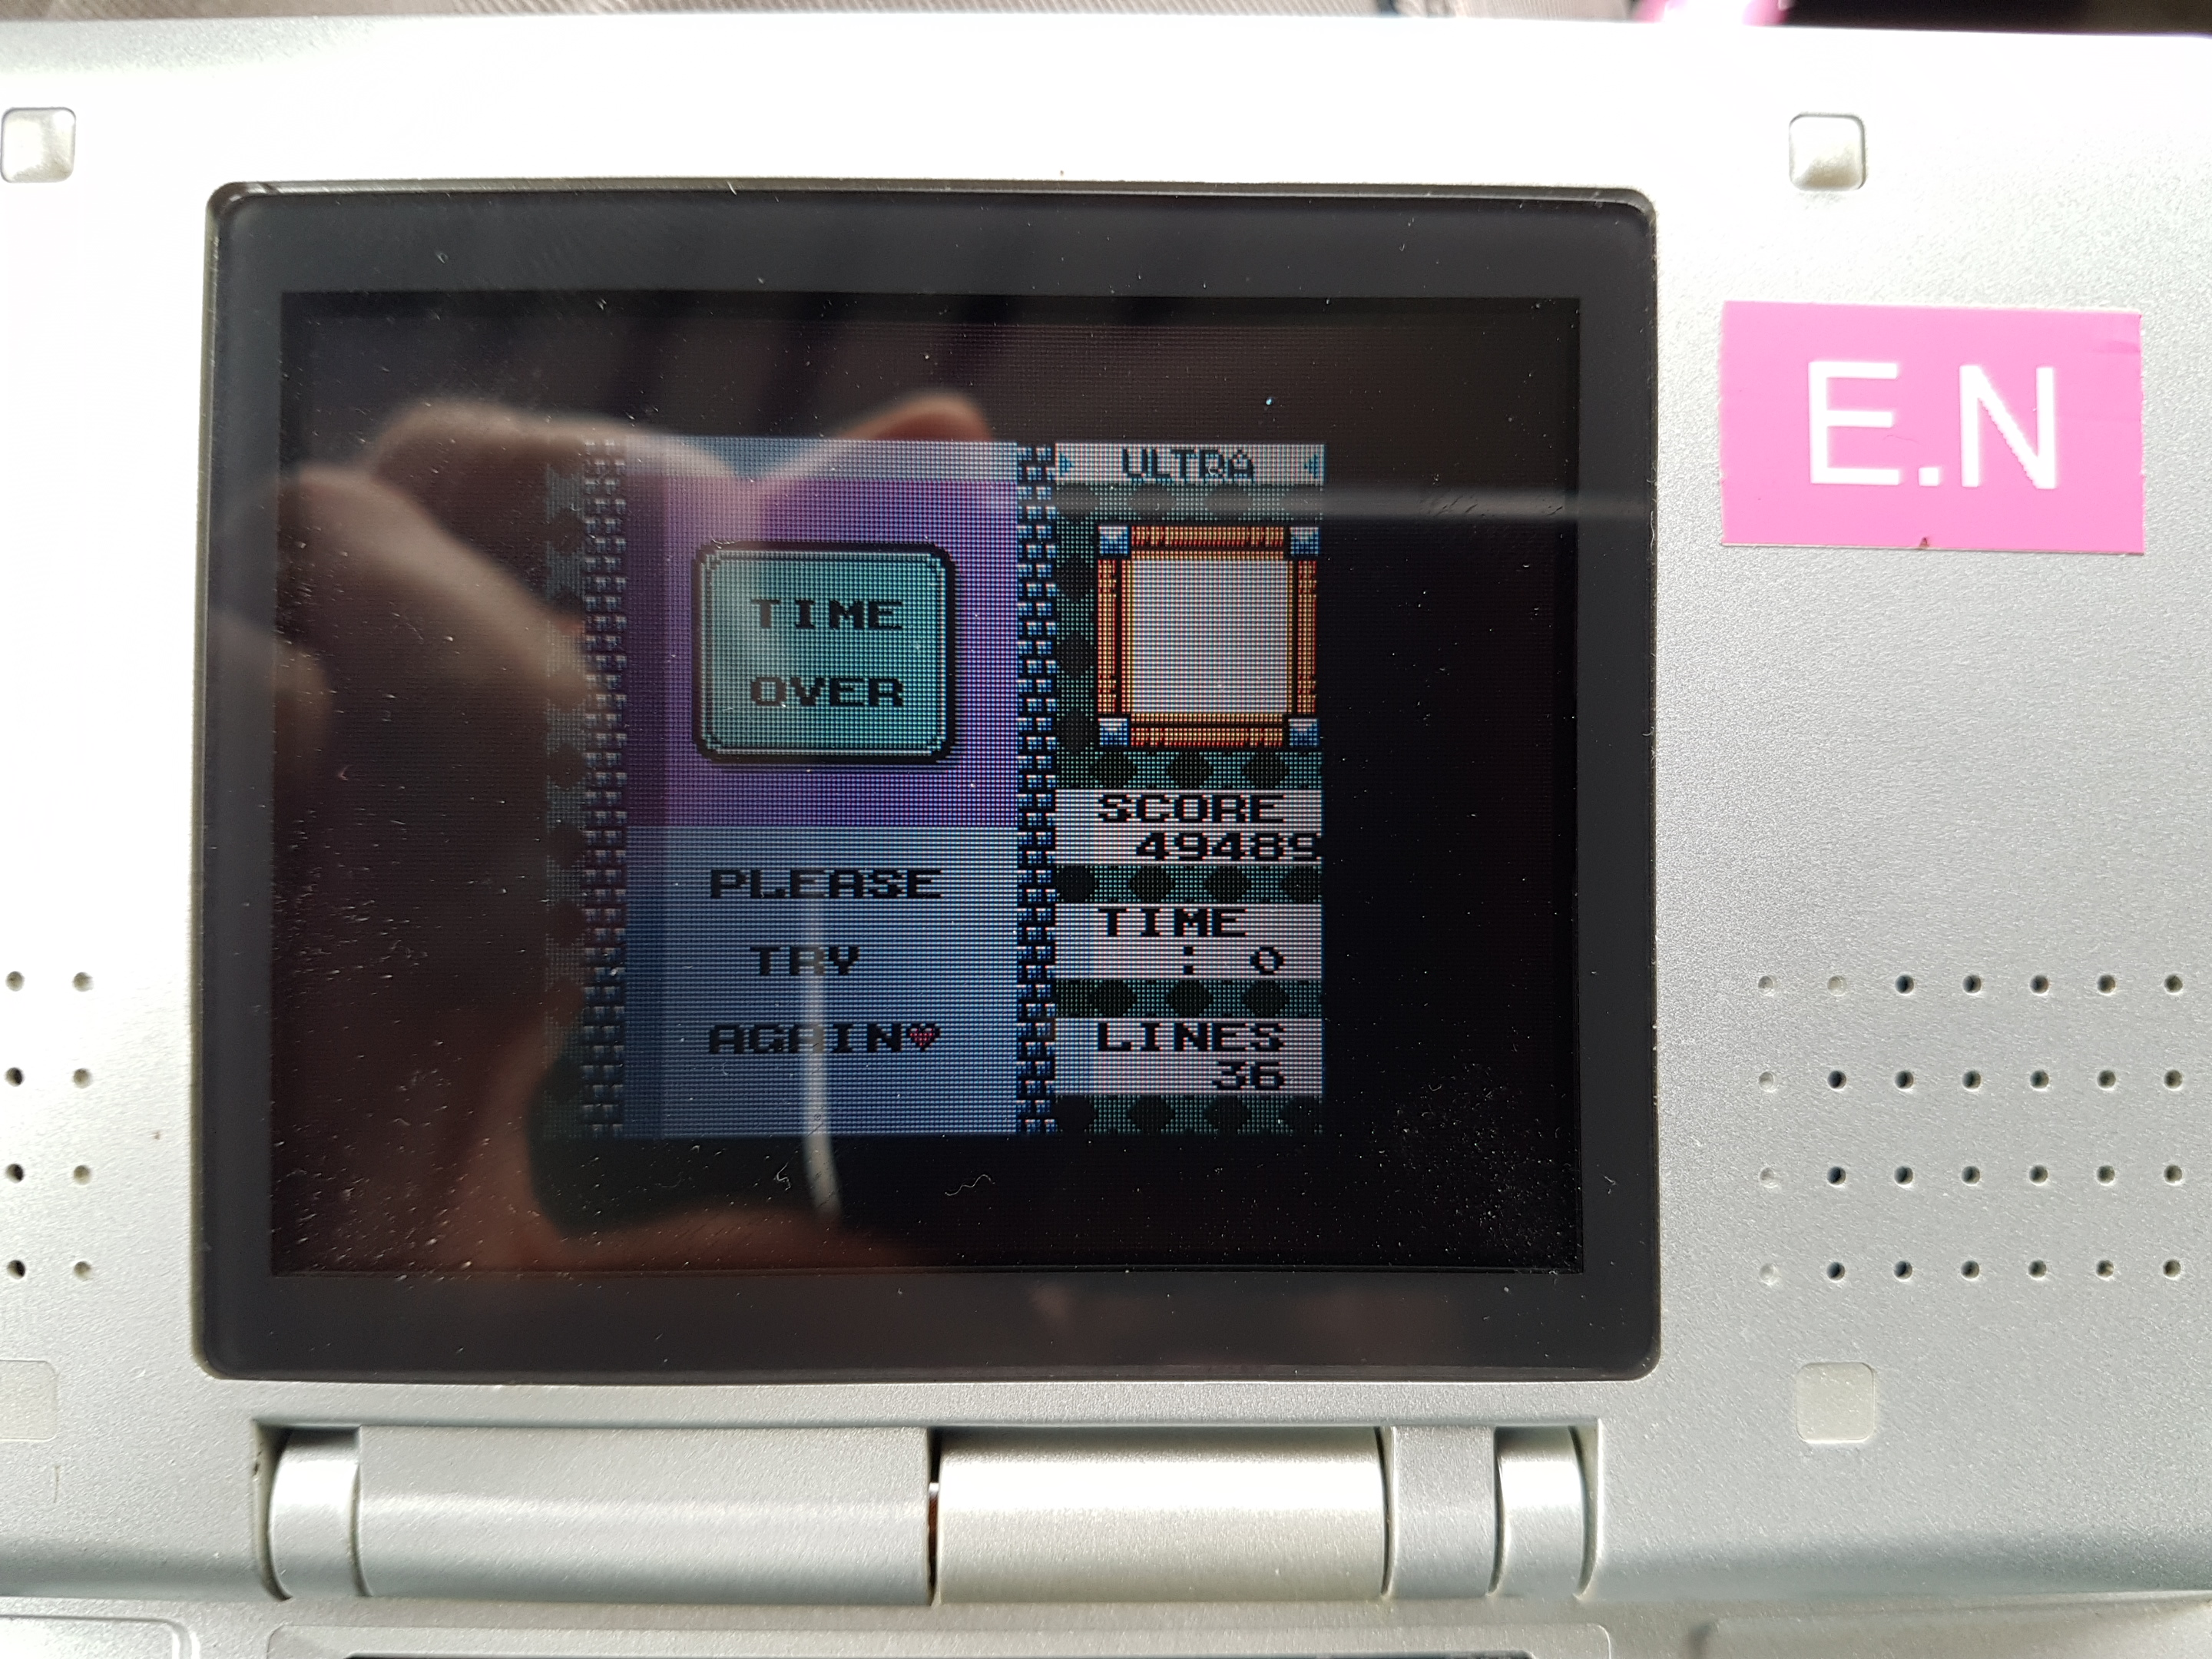 EddieNiceguy: Tetris DX: Ultra [Level 9] (Game Boy Color Emulated) 49,489 points on 2019-02-04 05:36:38